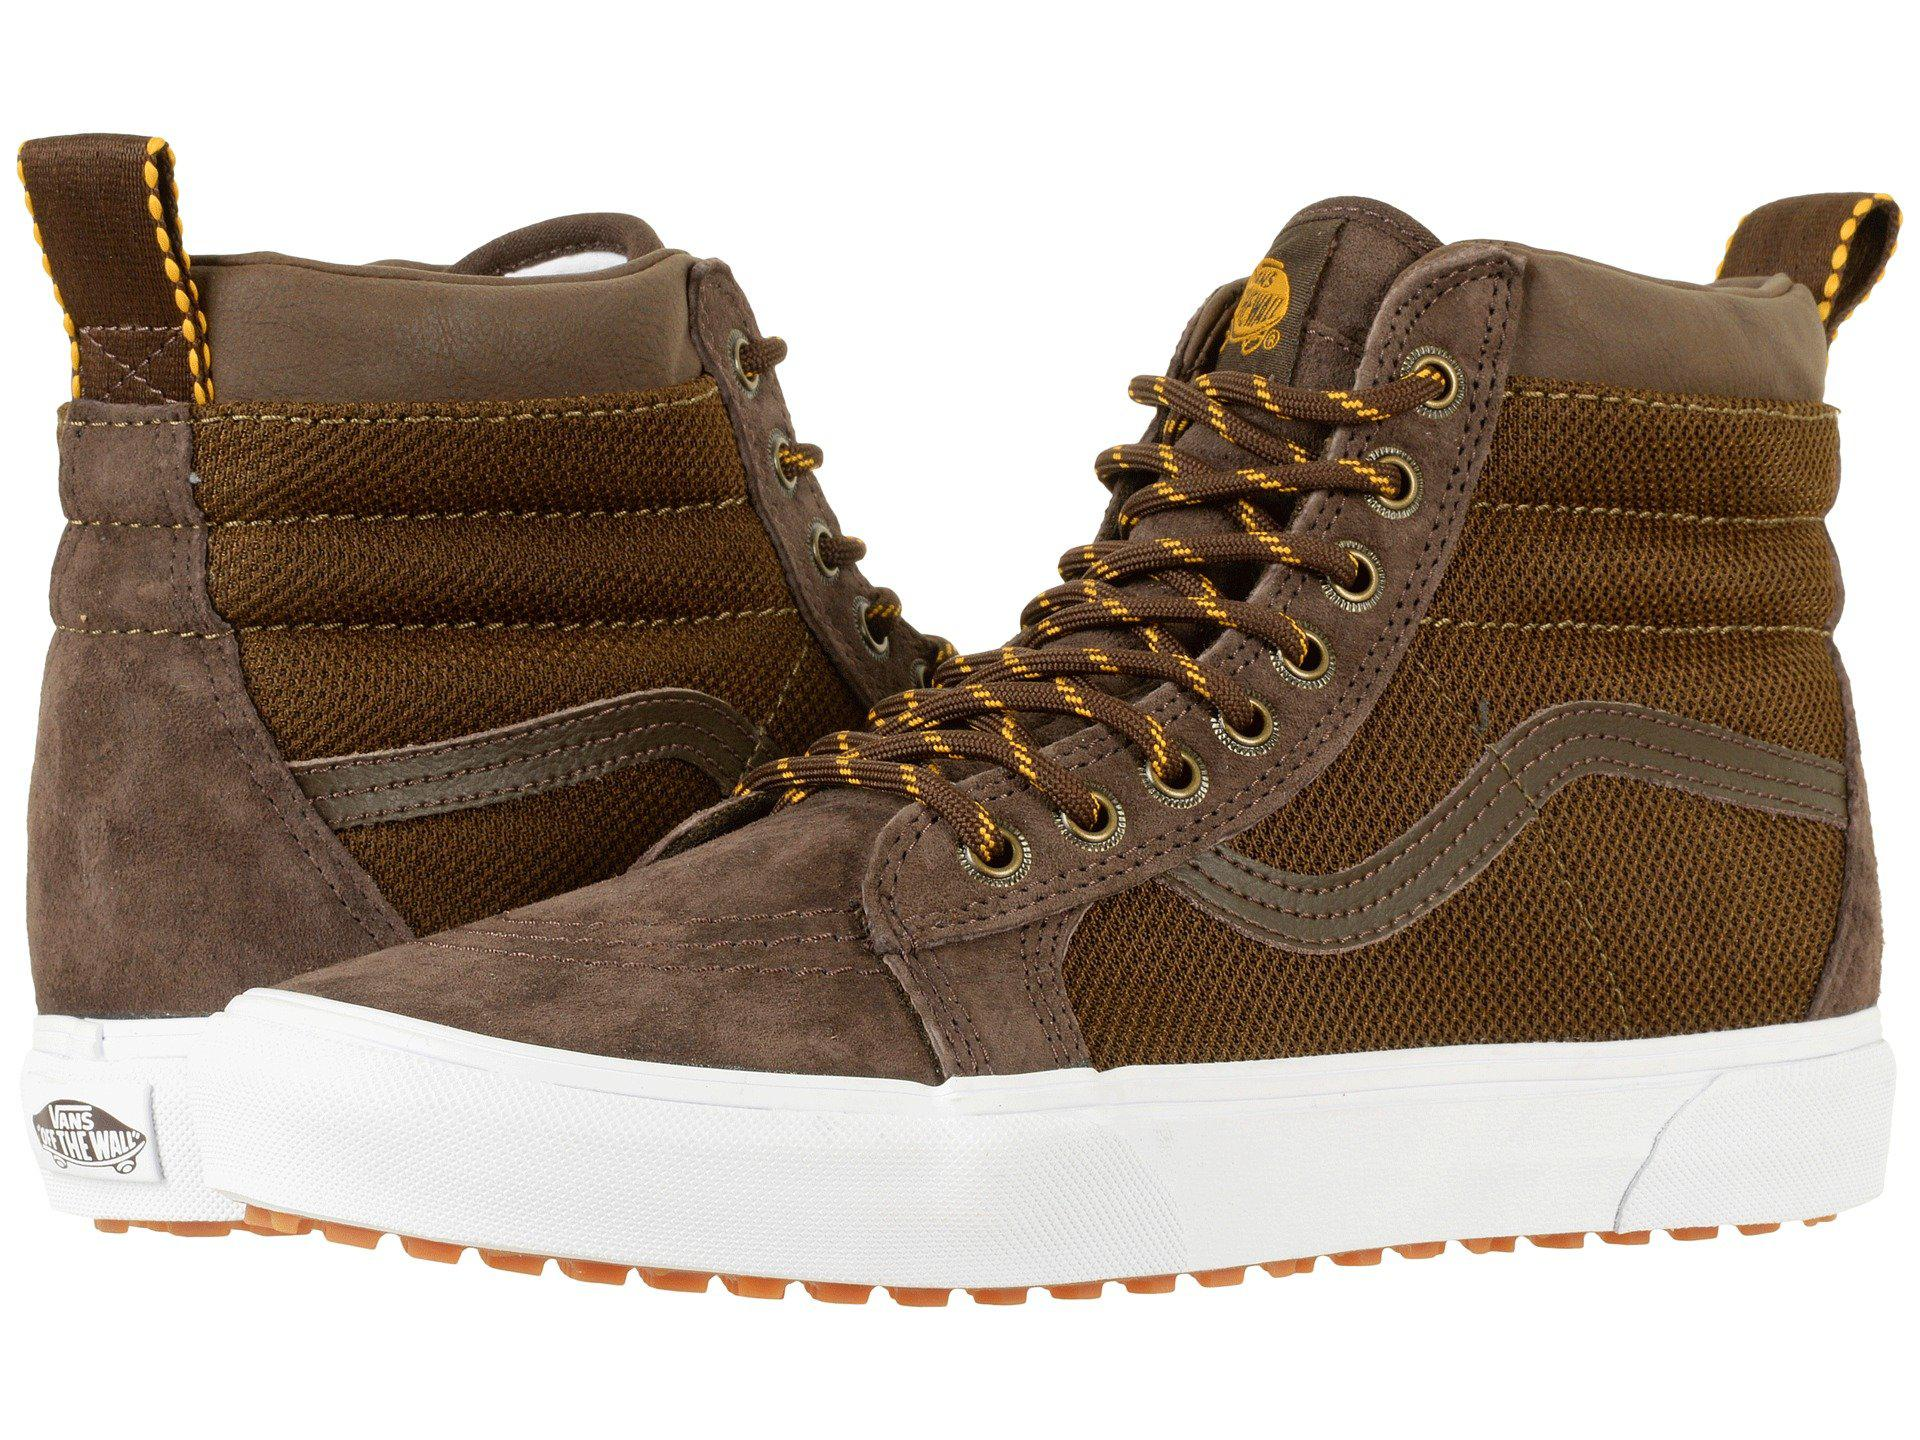 8683774ab1 Lyst - Vans Sk8-hi Mte ((mte) Winter Moss military) Skate Shoes in ...